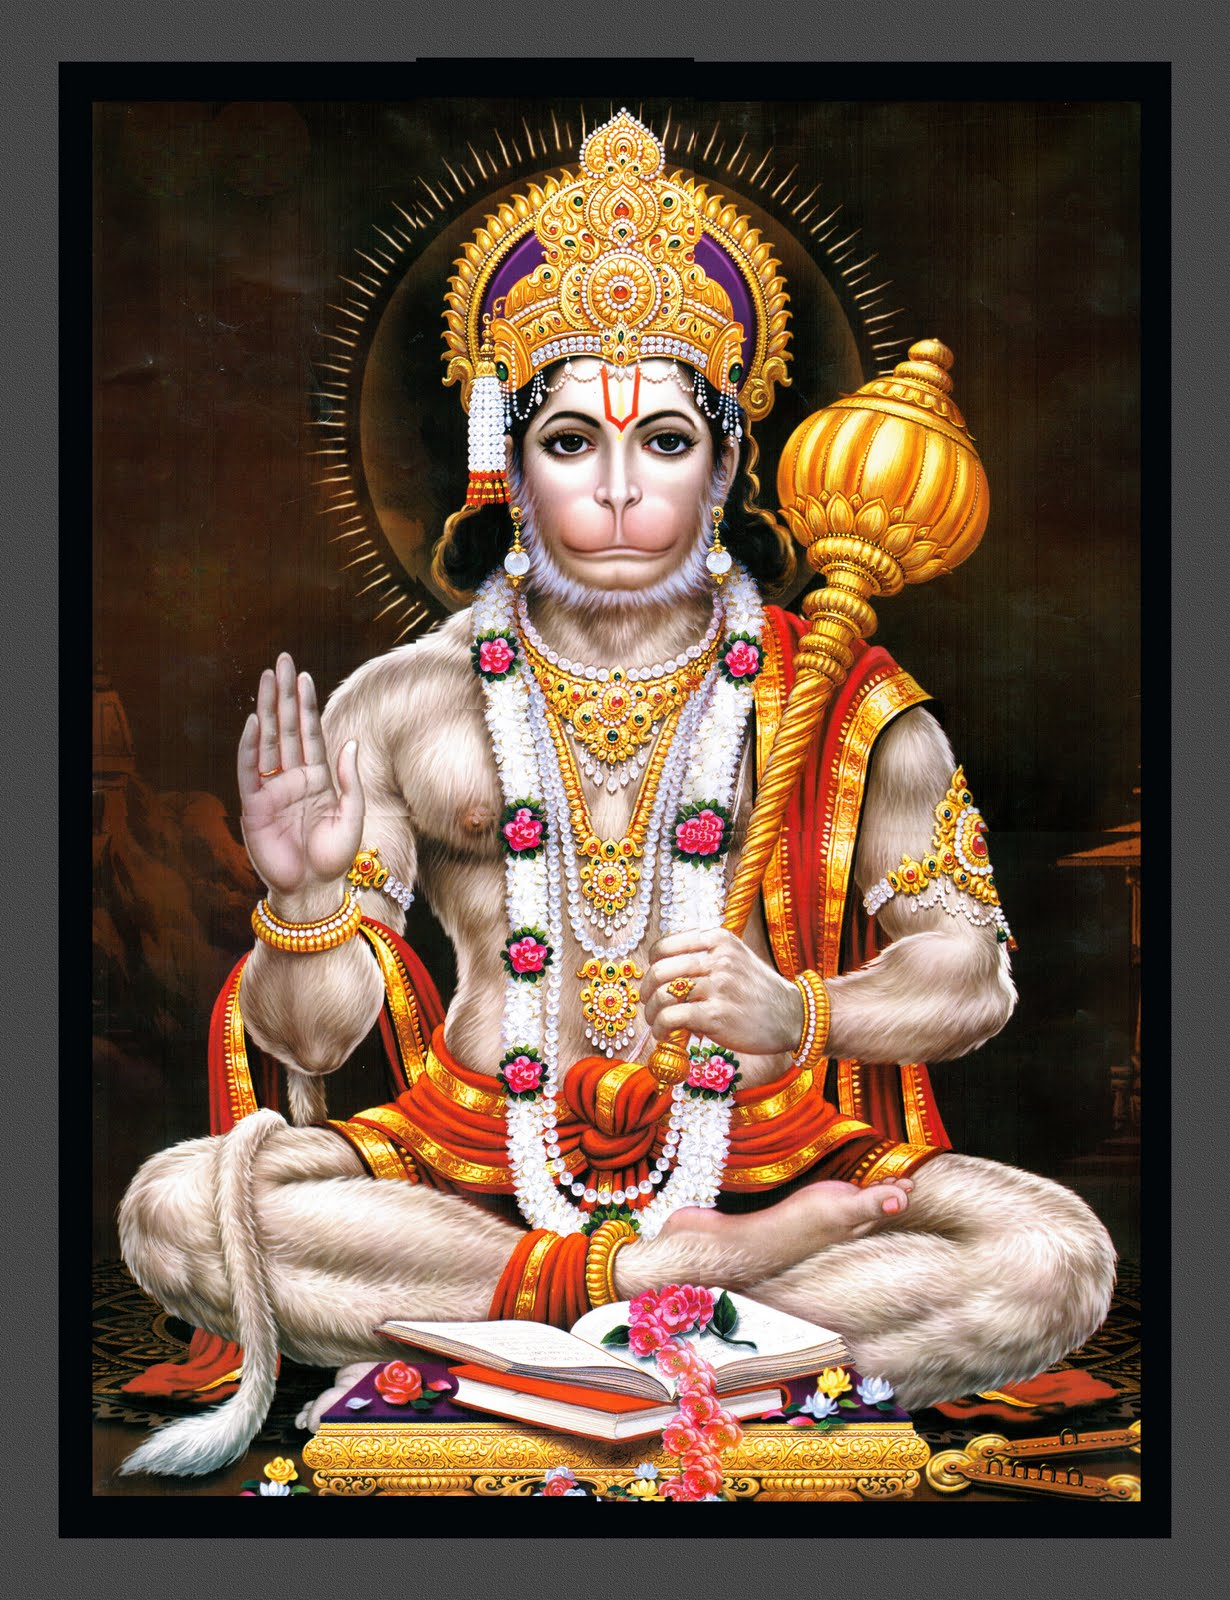 God Hanuman Ji HariHarji: March 13, 2...